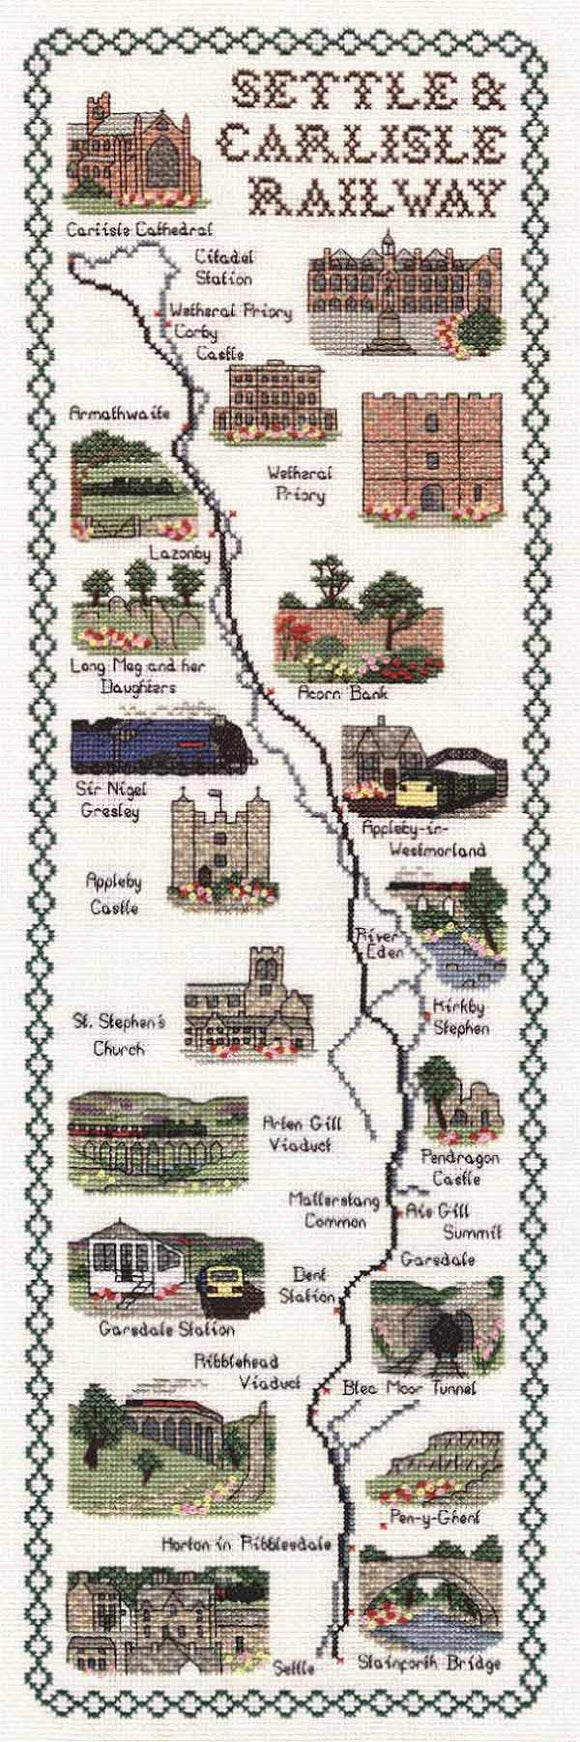 Settle and Carlisle Railway Map Cross Stitch Kit by Classic Embroidery